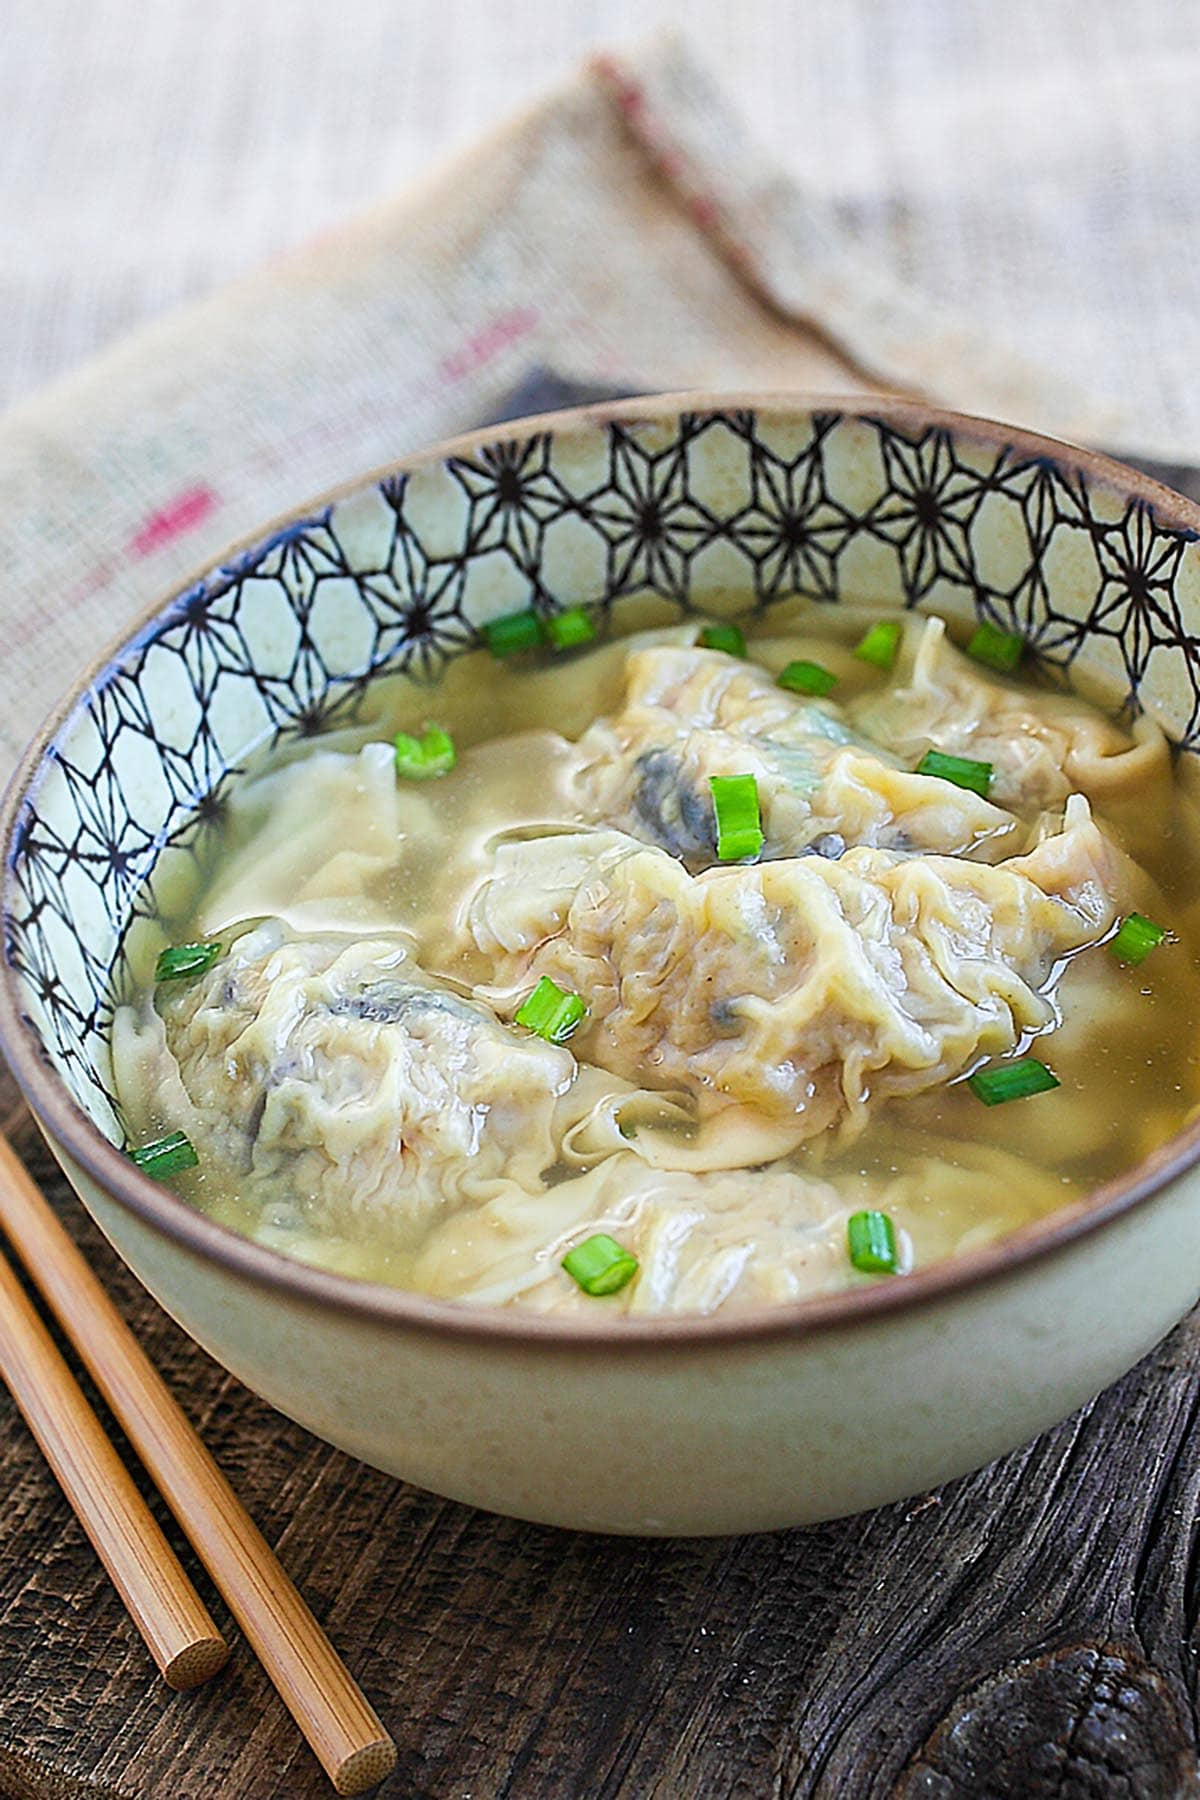 Delicious and easy homemade Chinese pork dumplings soup served in a bowl.